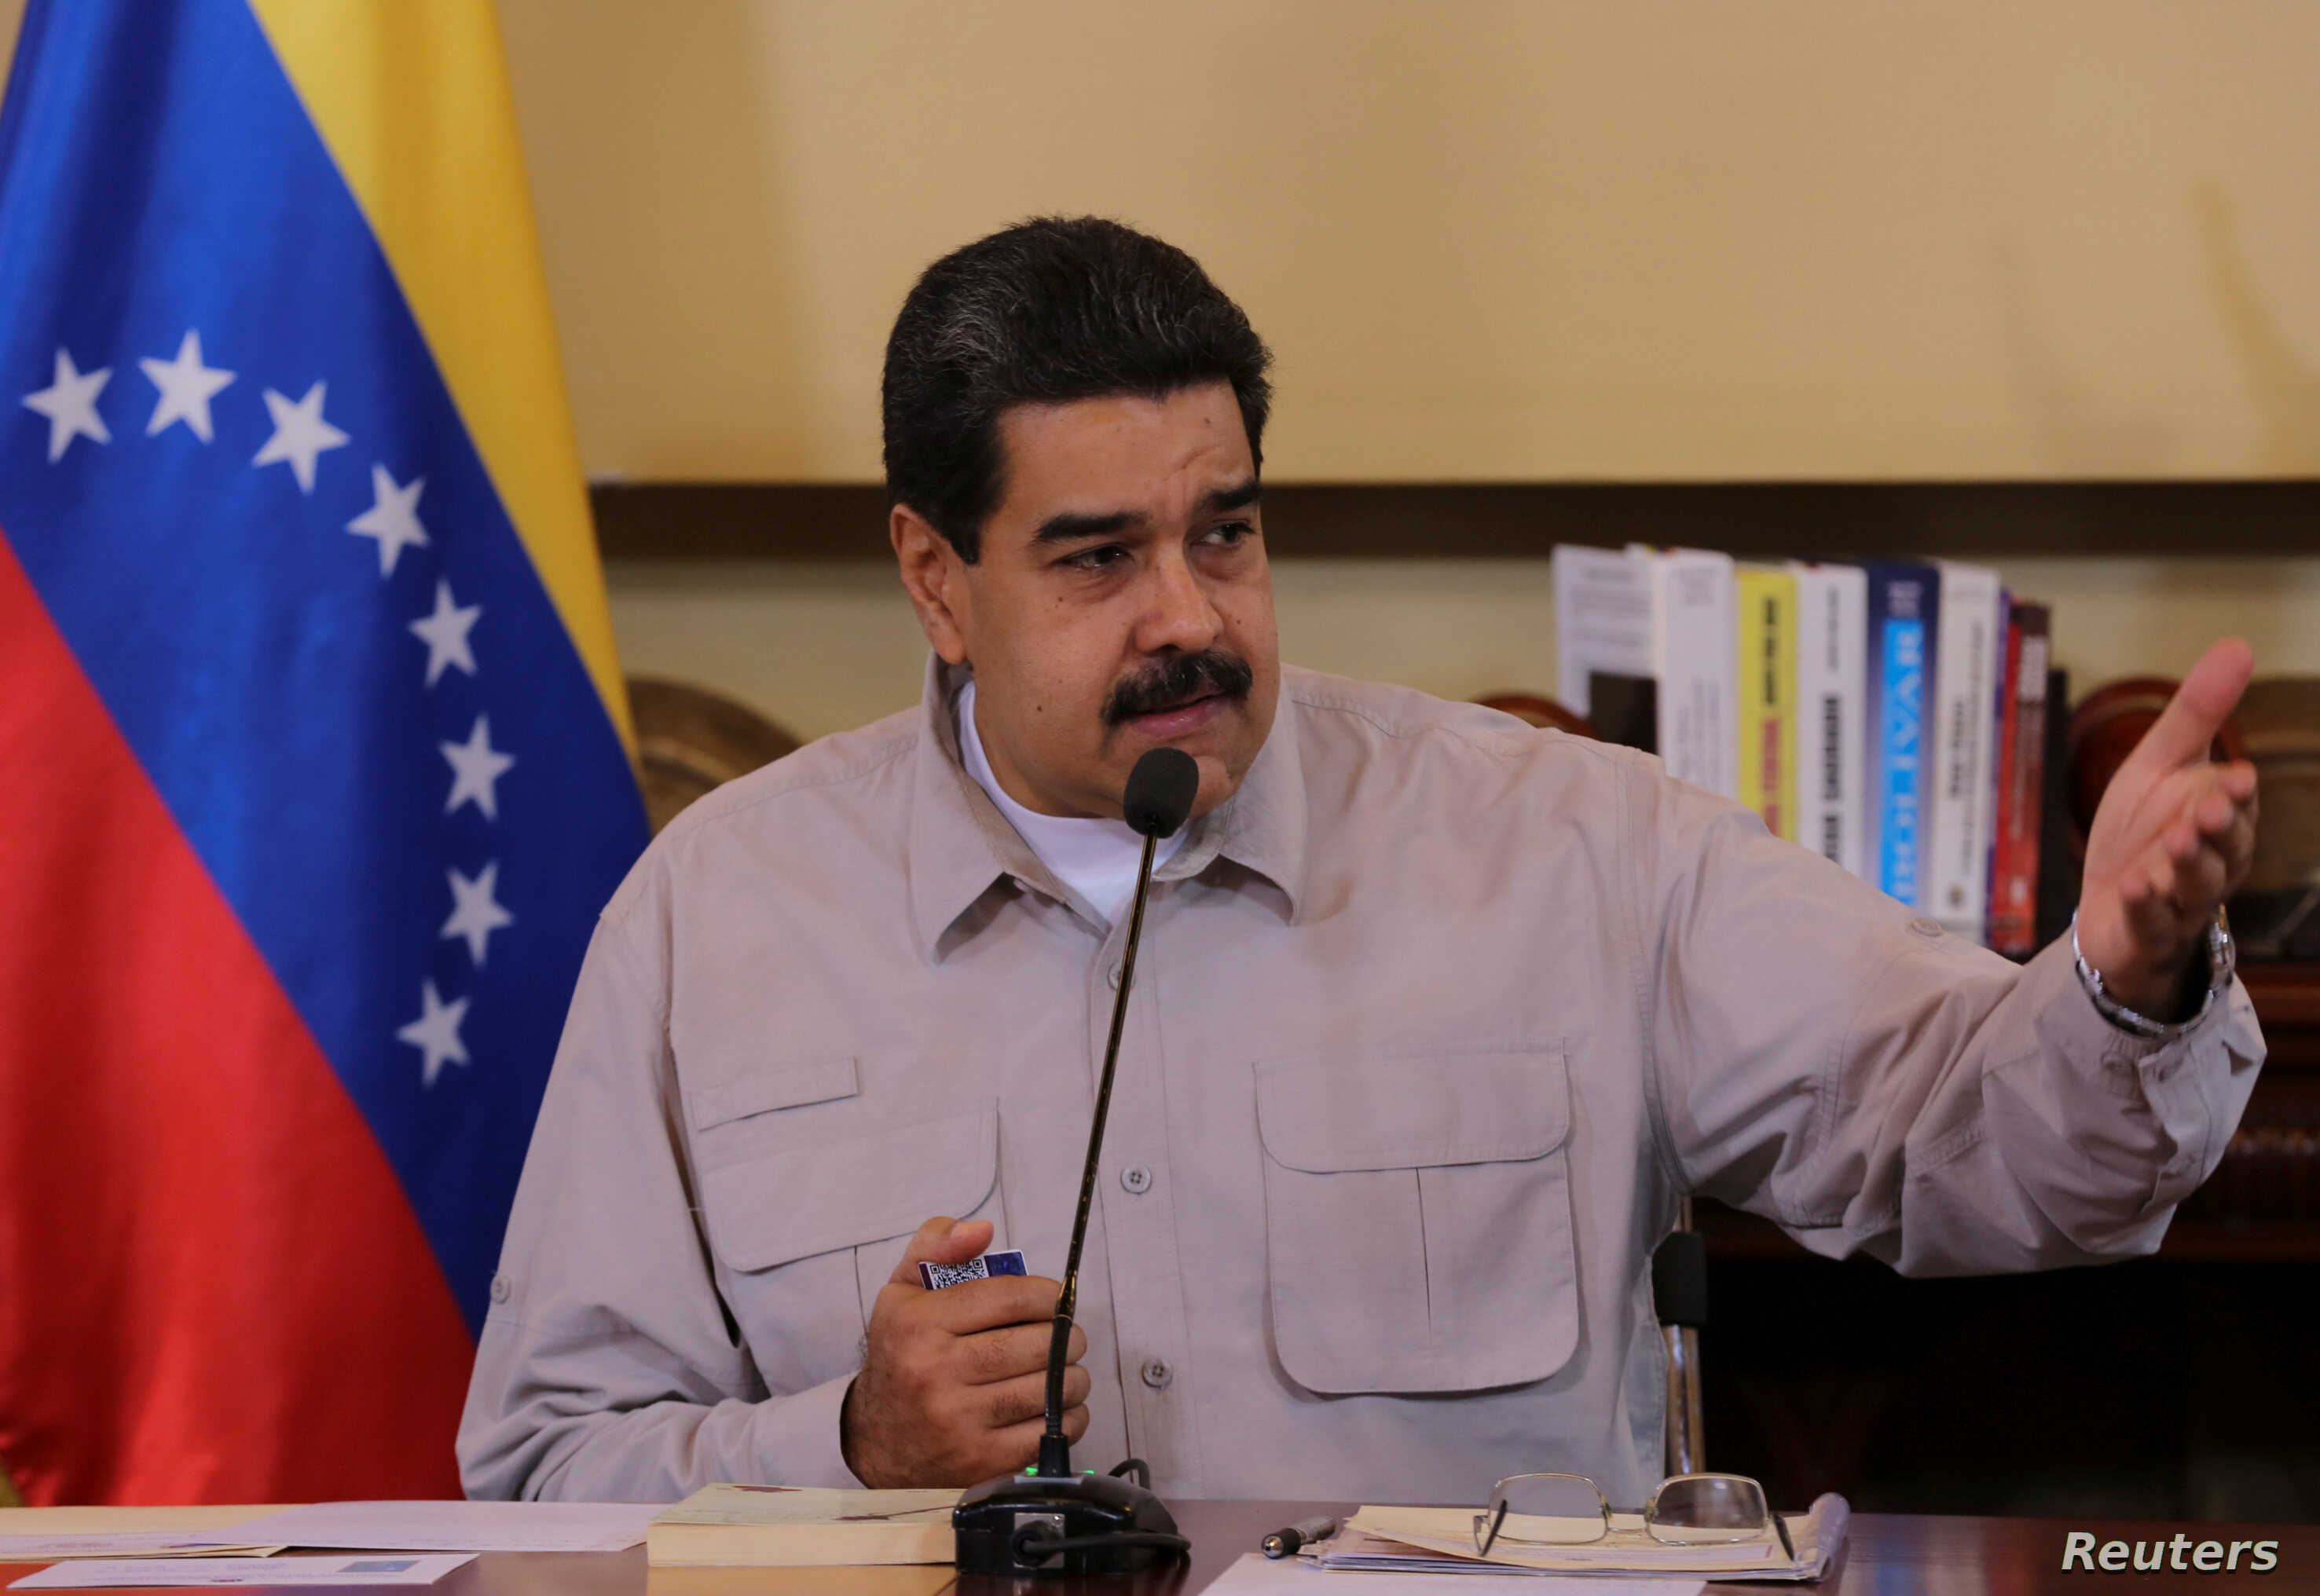 Venezuela's President Nicolas Maduro speaks during a meeting with ministers and pro-government governors in Caracas, Sept. 25, 2017.